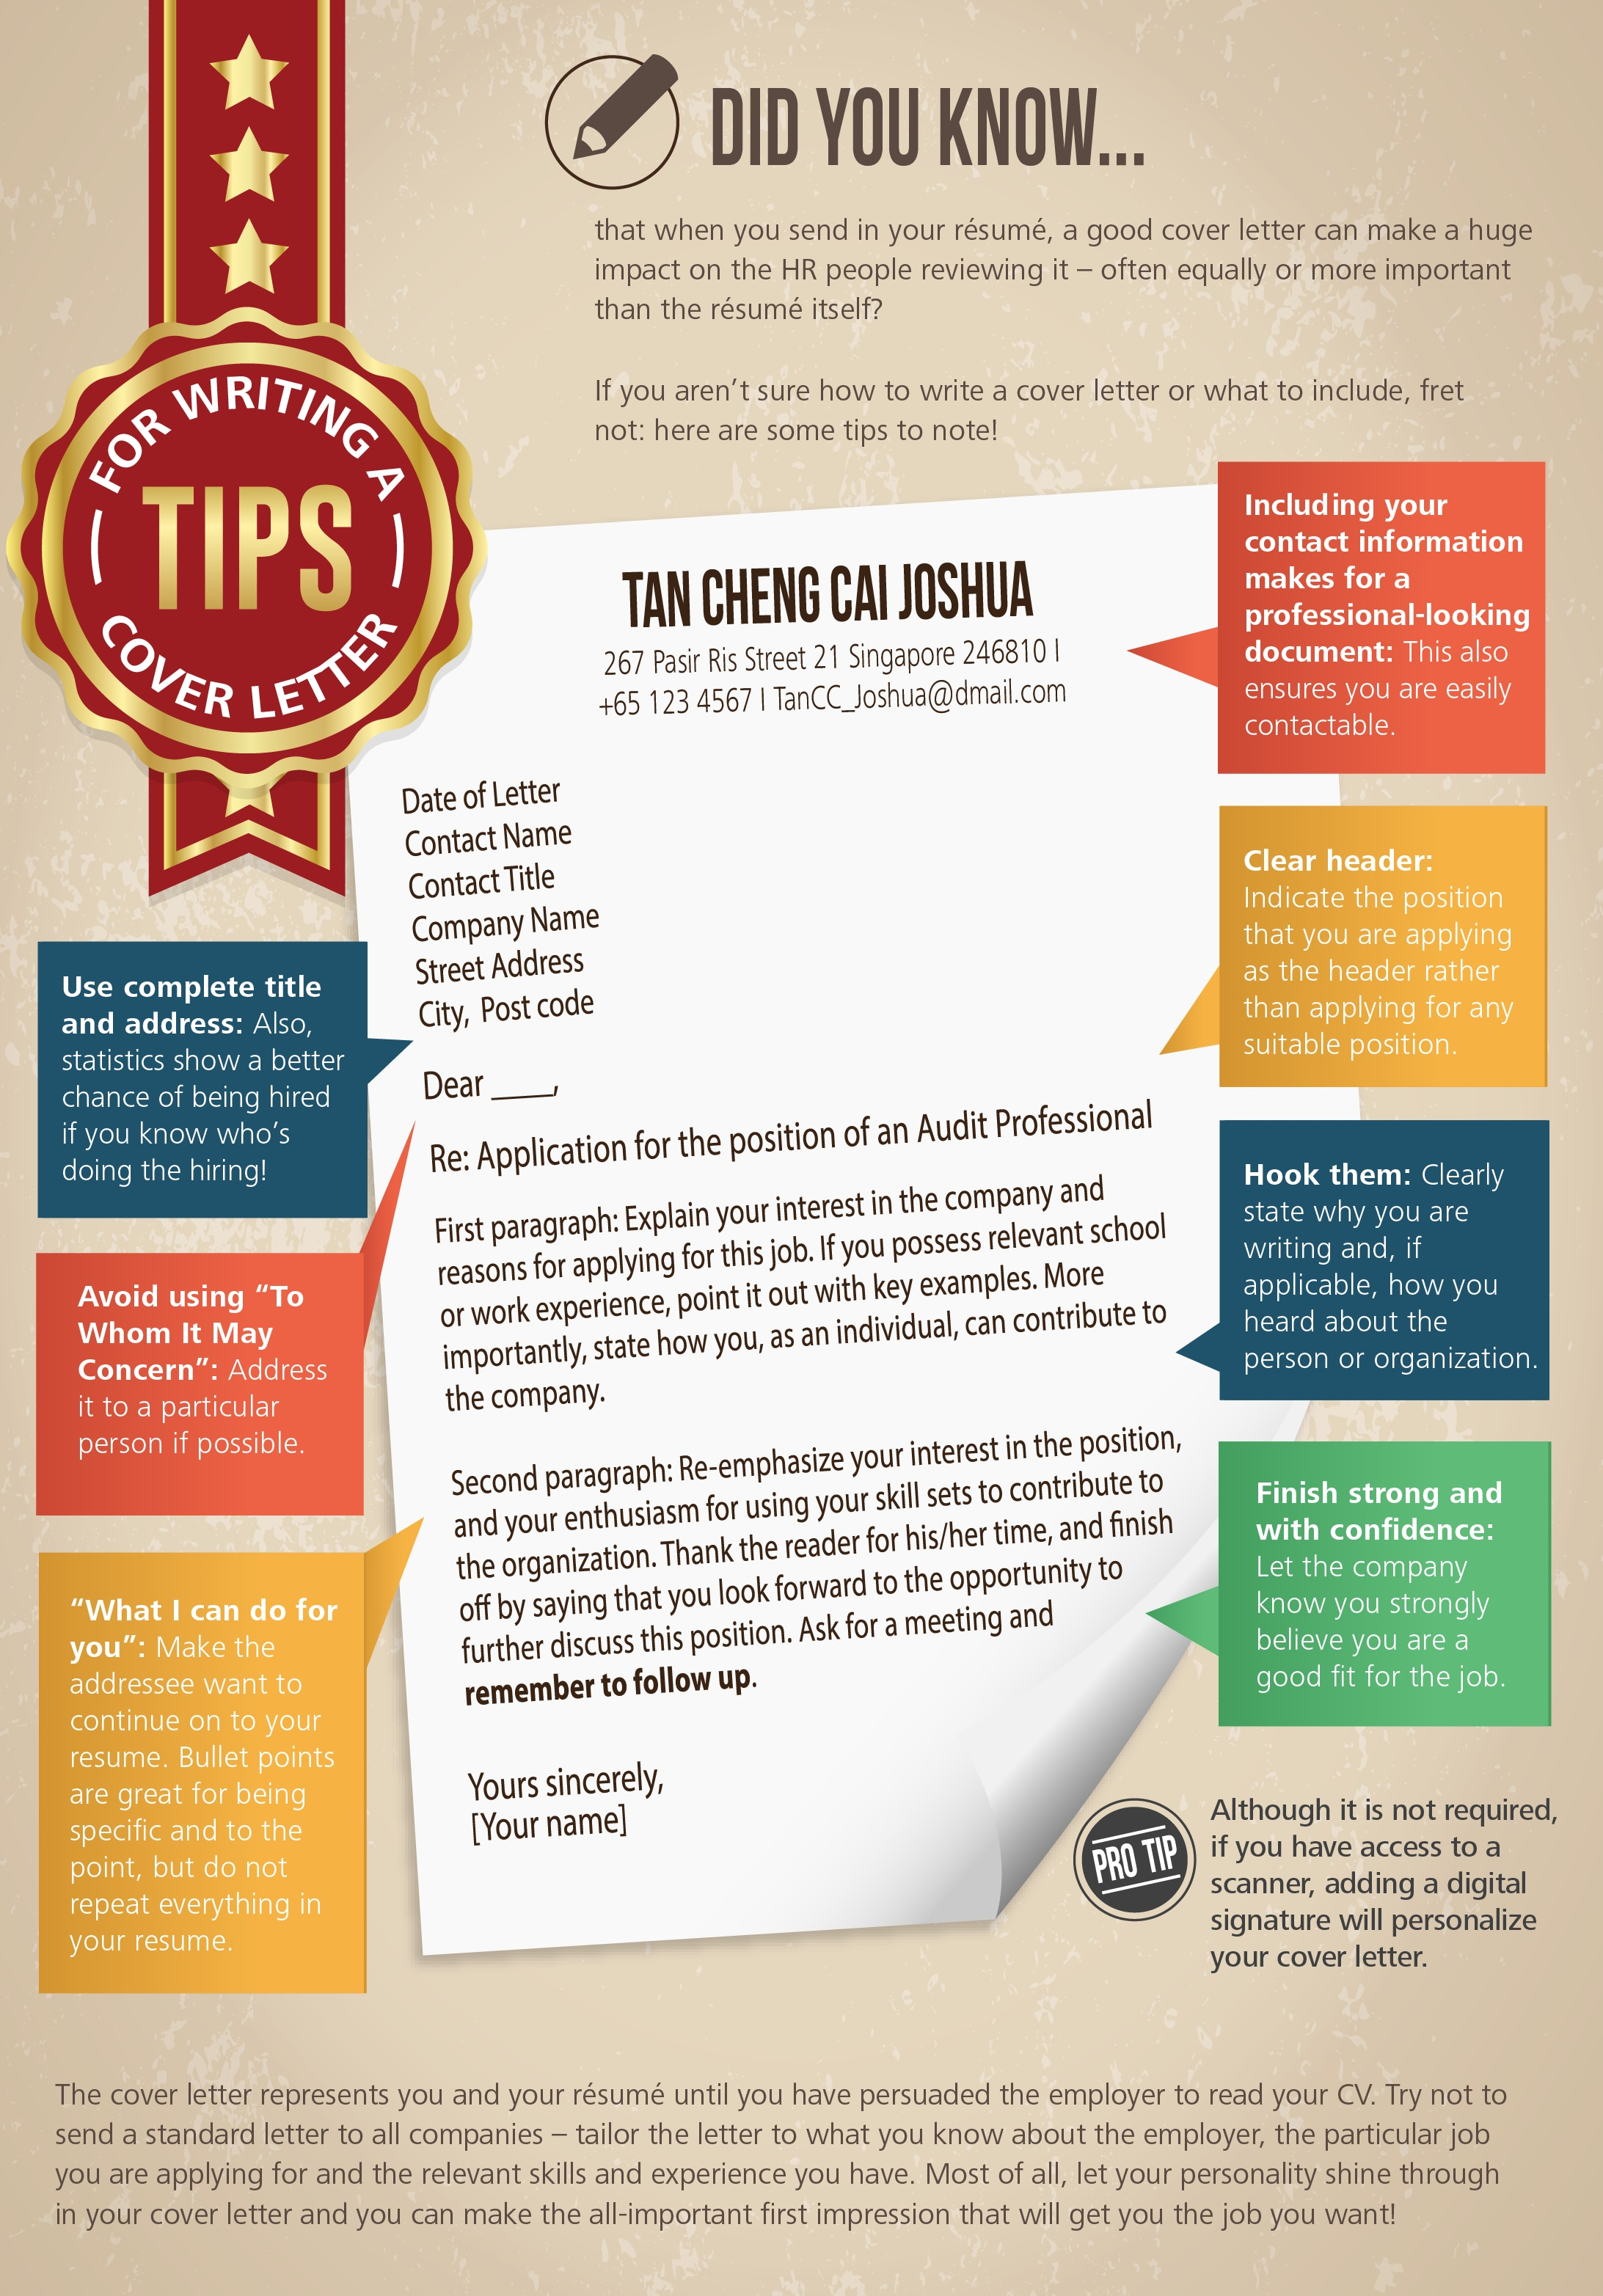 tips for writing a cover letter - Deloitte Cover Letter